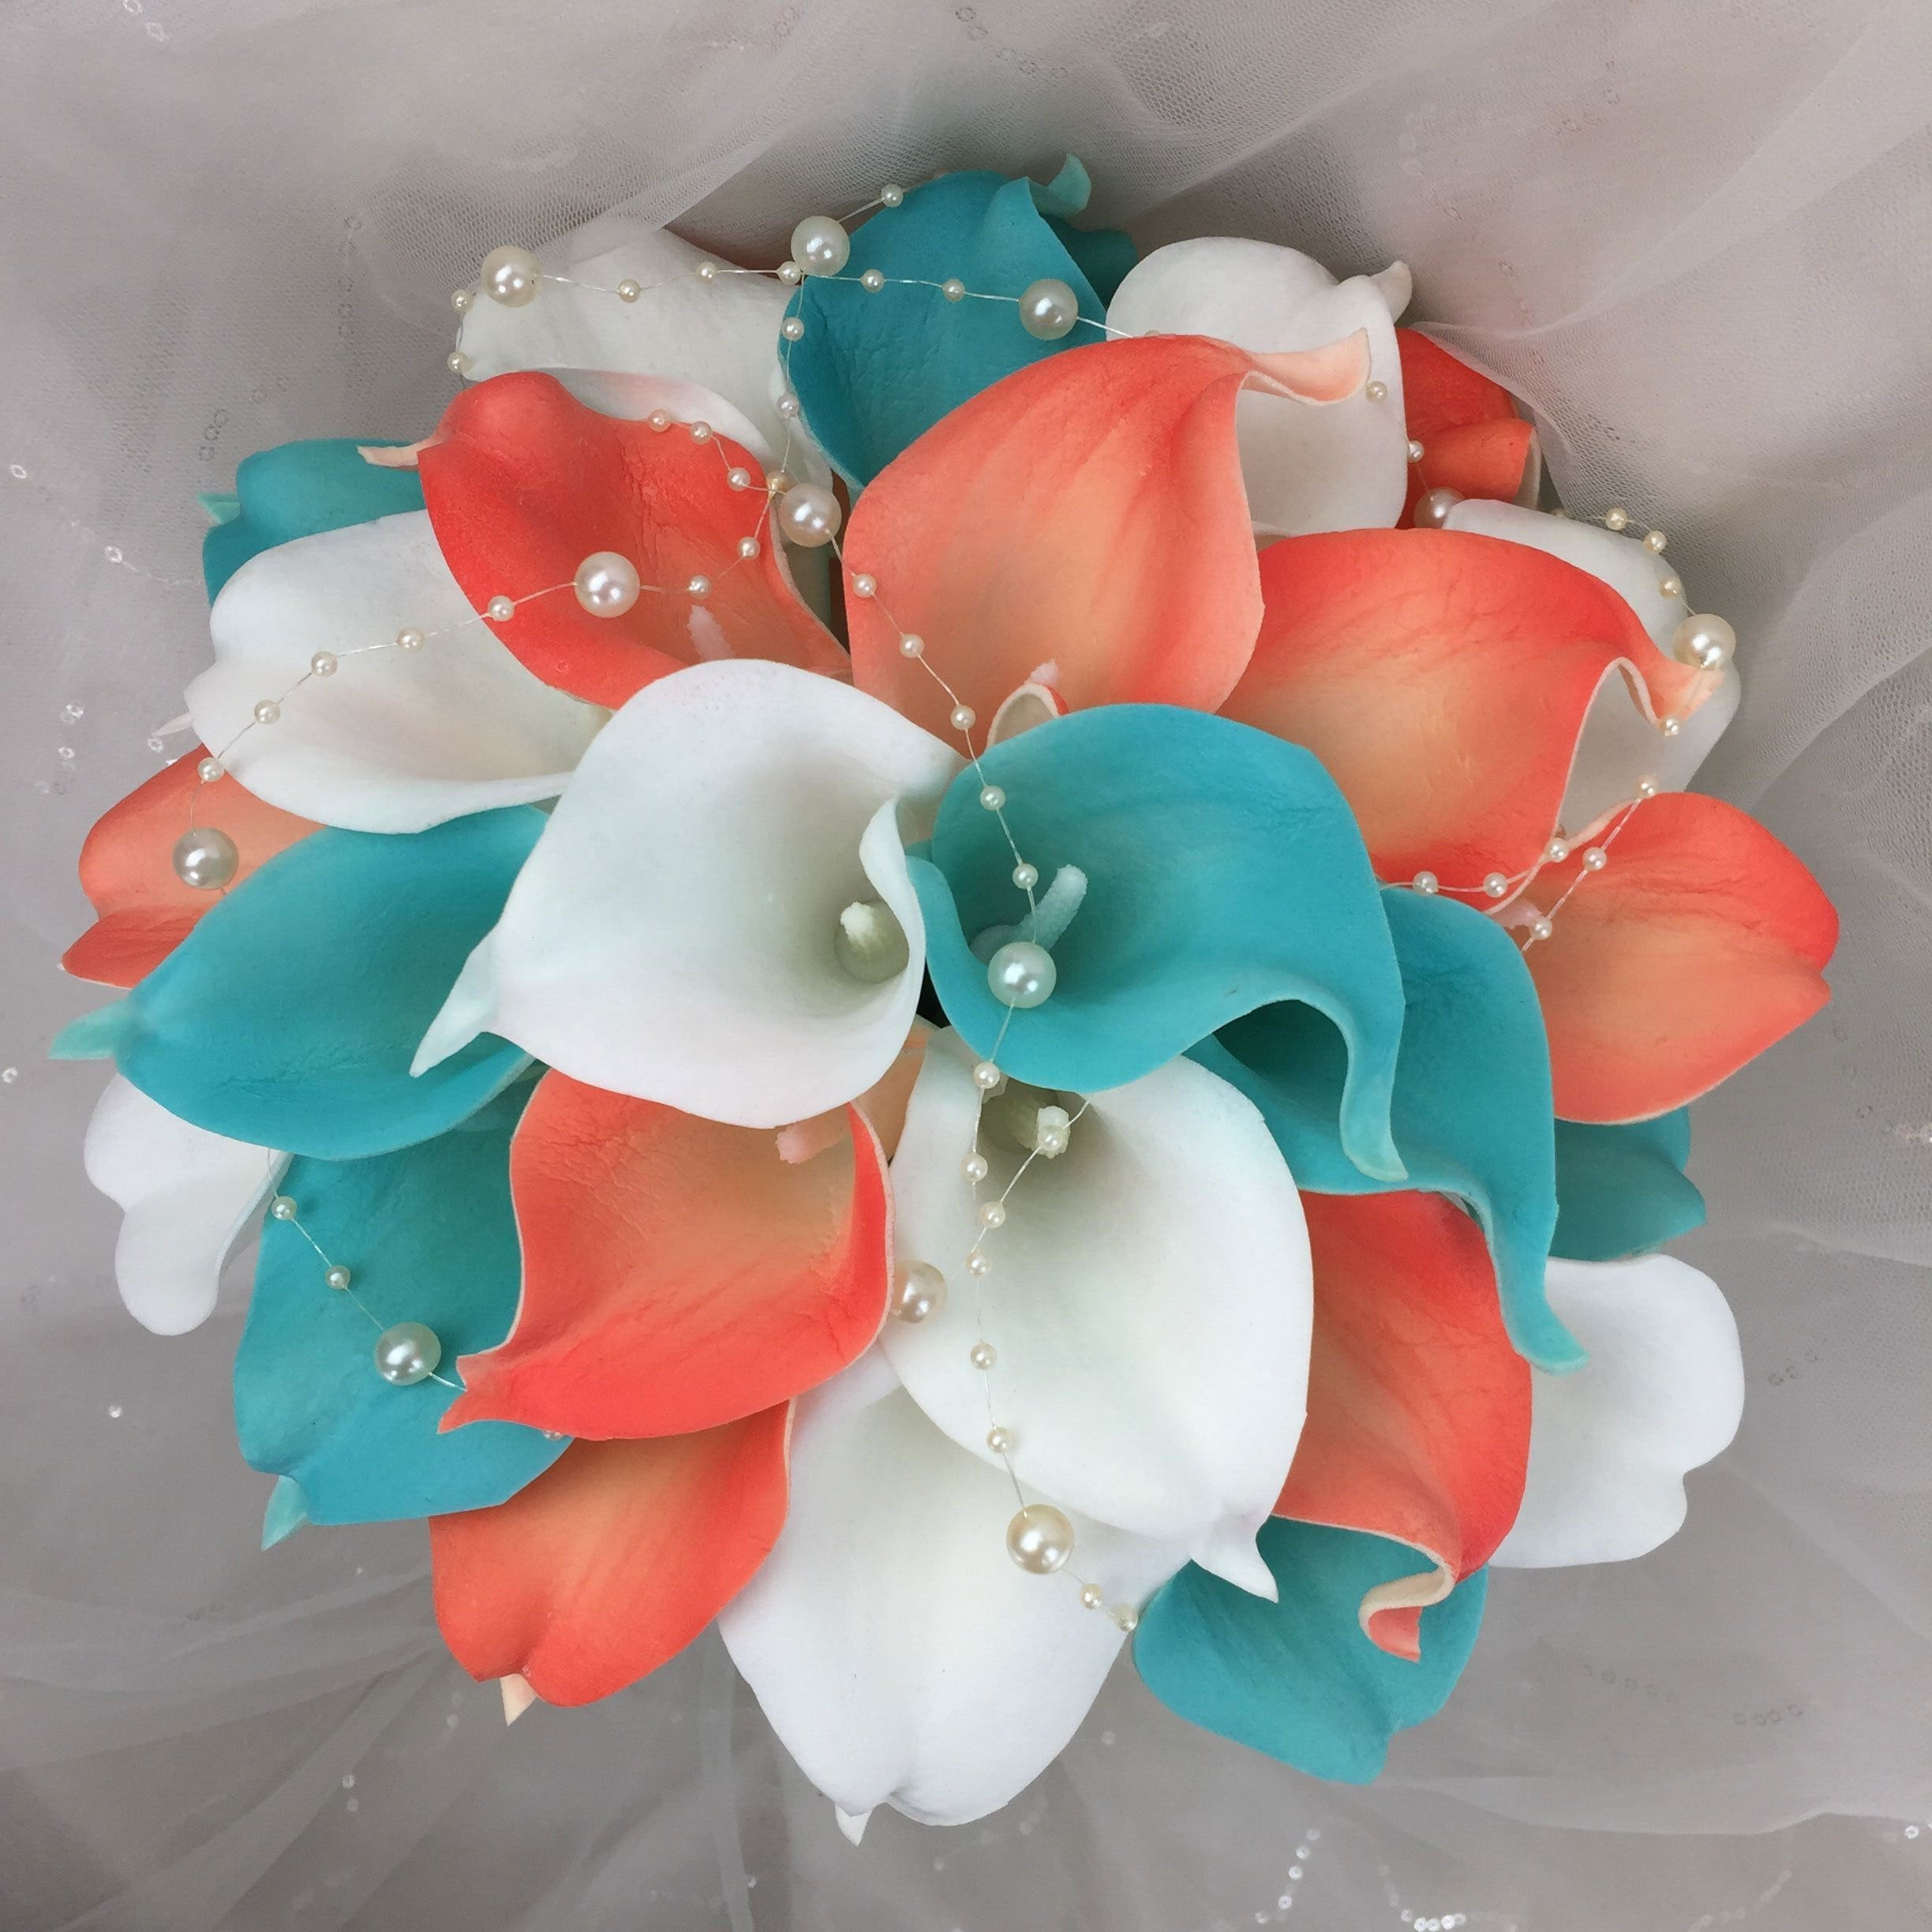 Lily Garden Real Touch Calla Lily Coral and White and Carnation Turquoise Flowers Wedding Bouquet (Wedding Bouquet Lilies) #turquoisecoralweddings